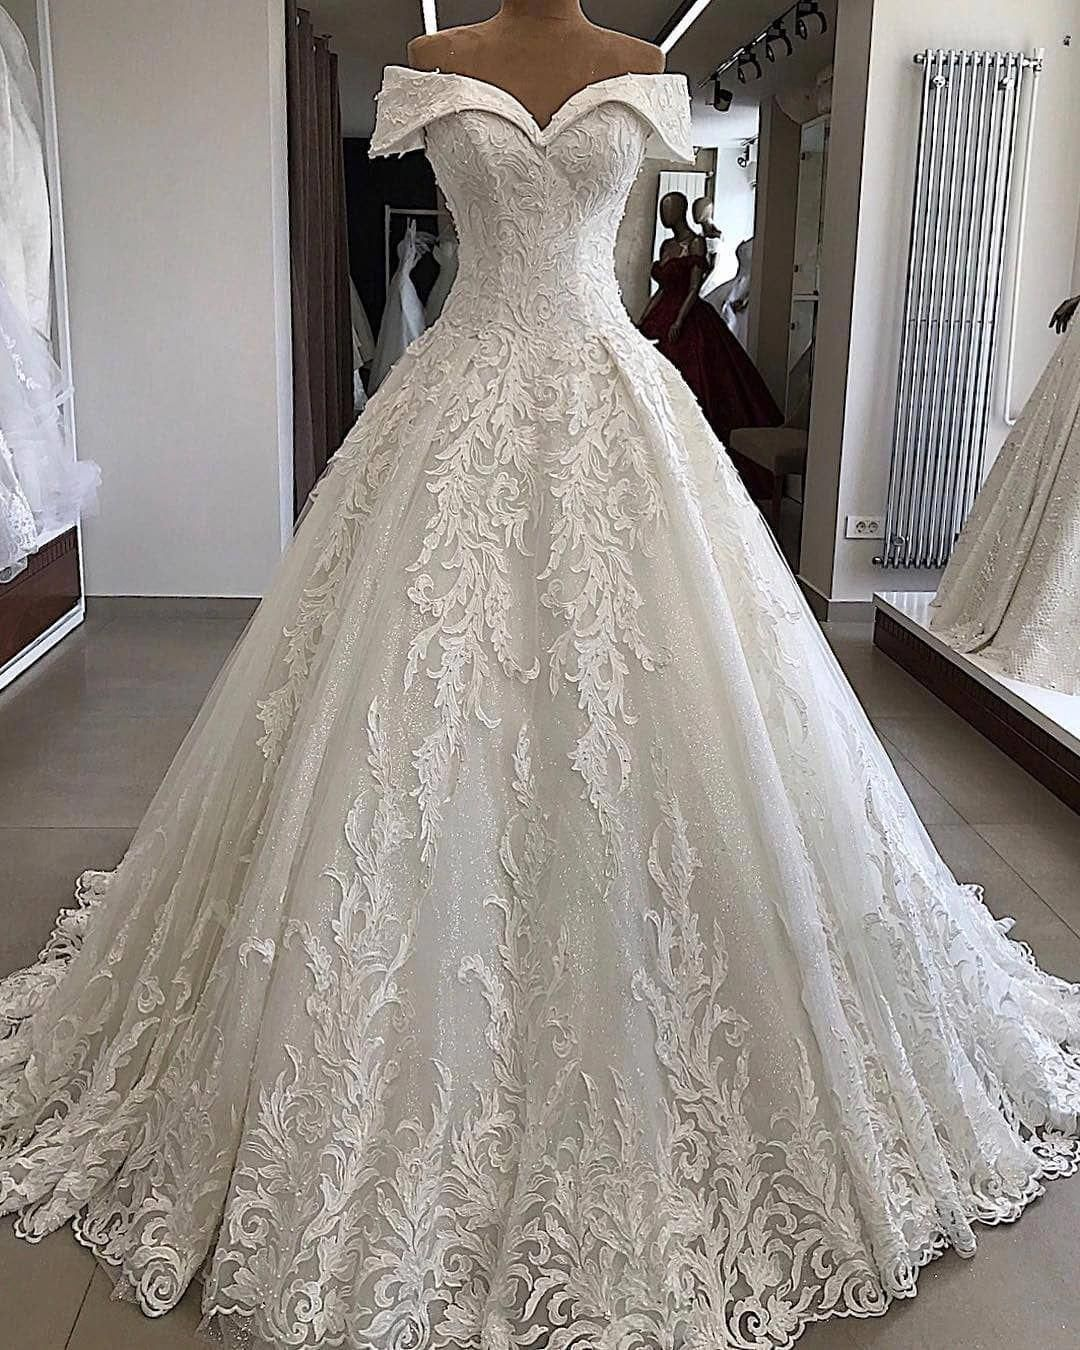 Wedding Dresses Online Wedding Frocks For Bride Where Can I Buy A Dress For A Wedding 20190117 Ball Gowns Wedding Tulle Wedding Dress Online Wedding Dress